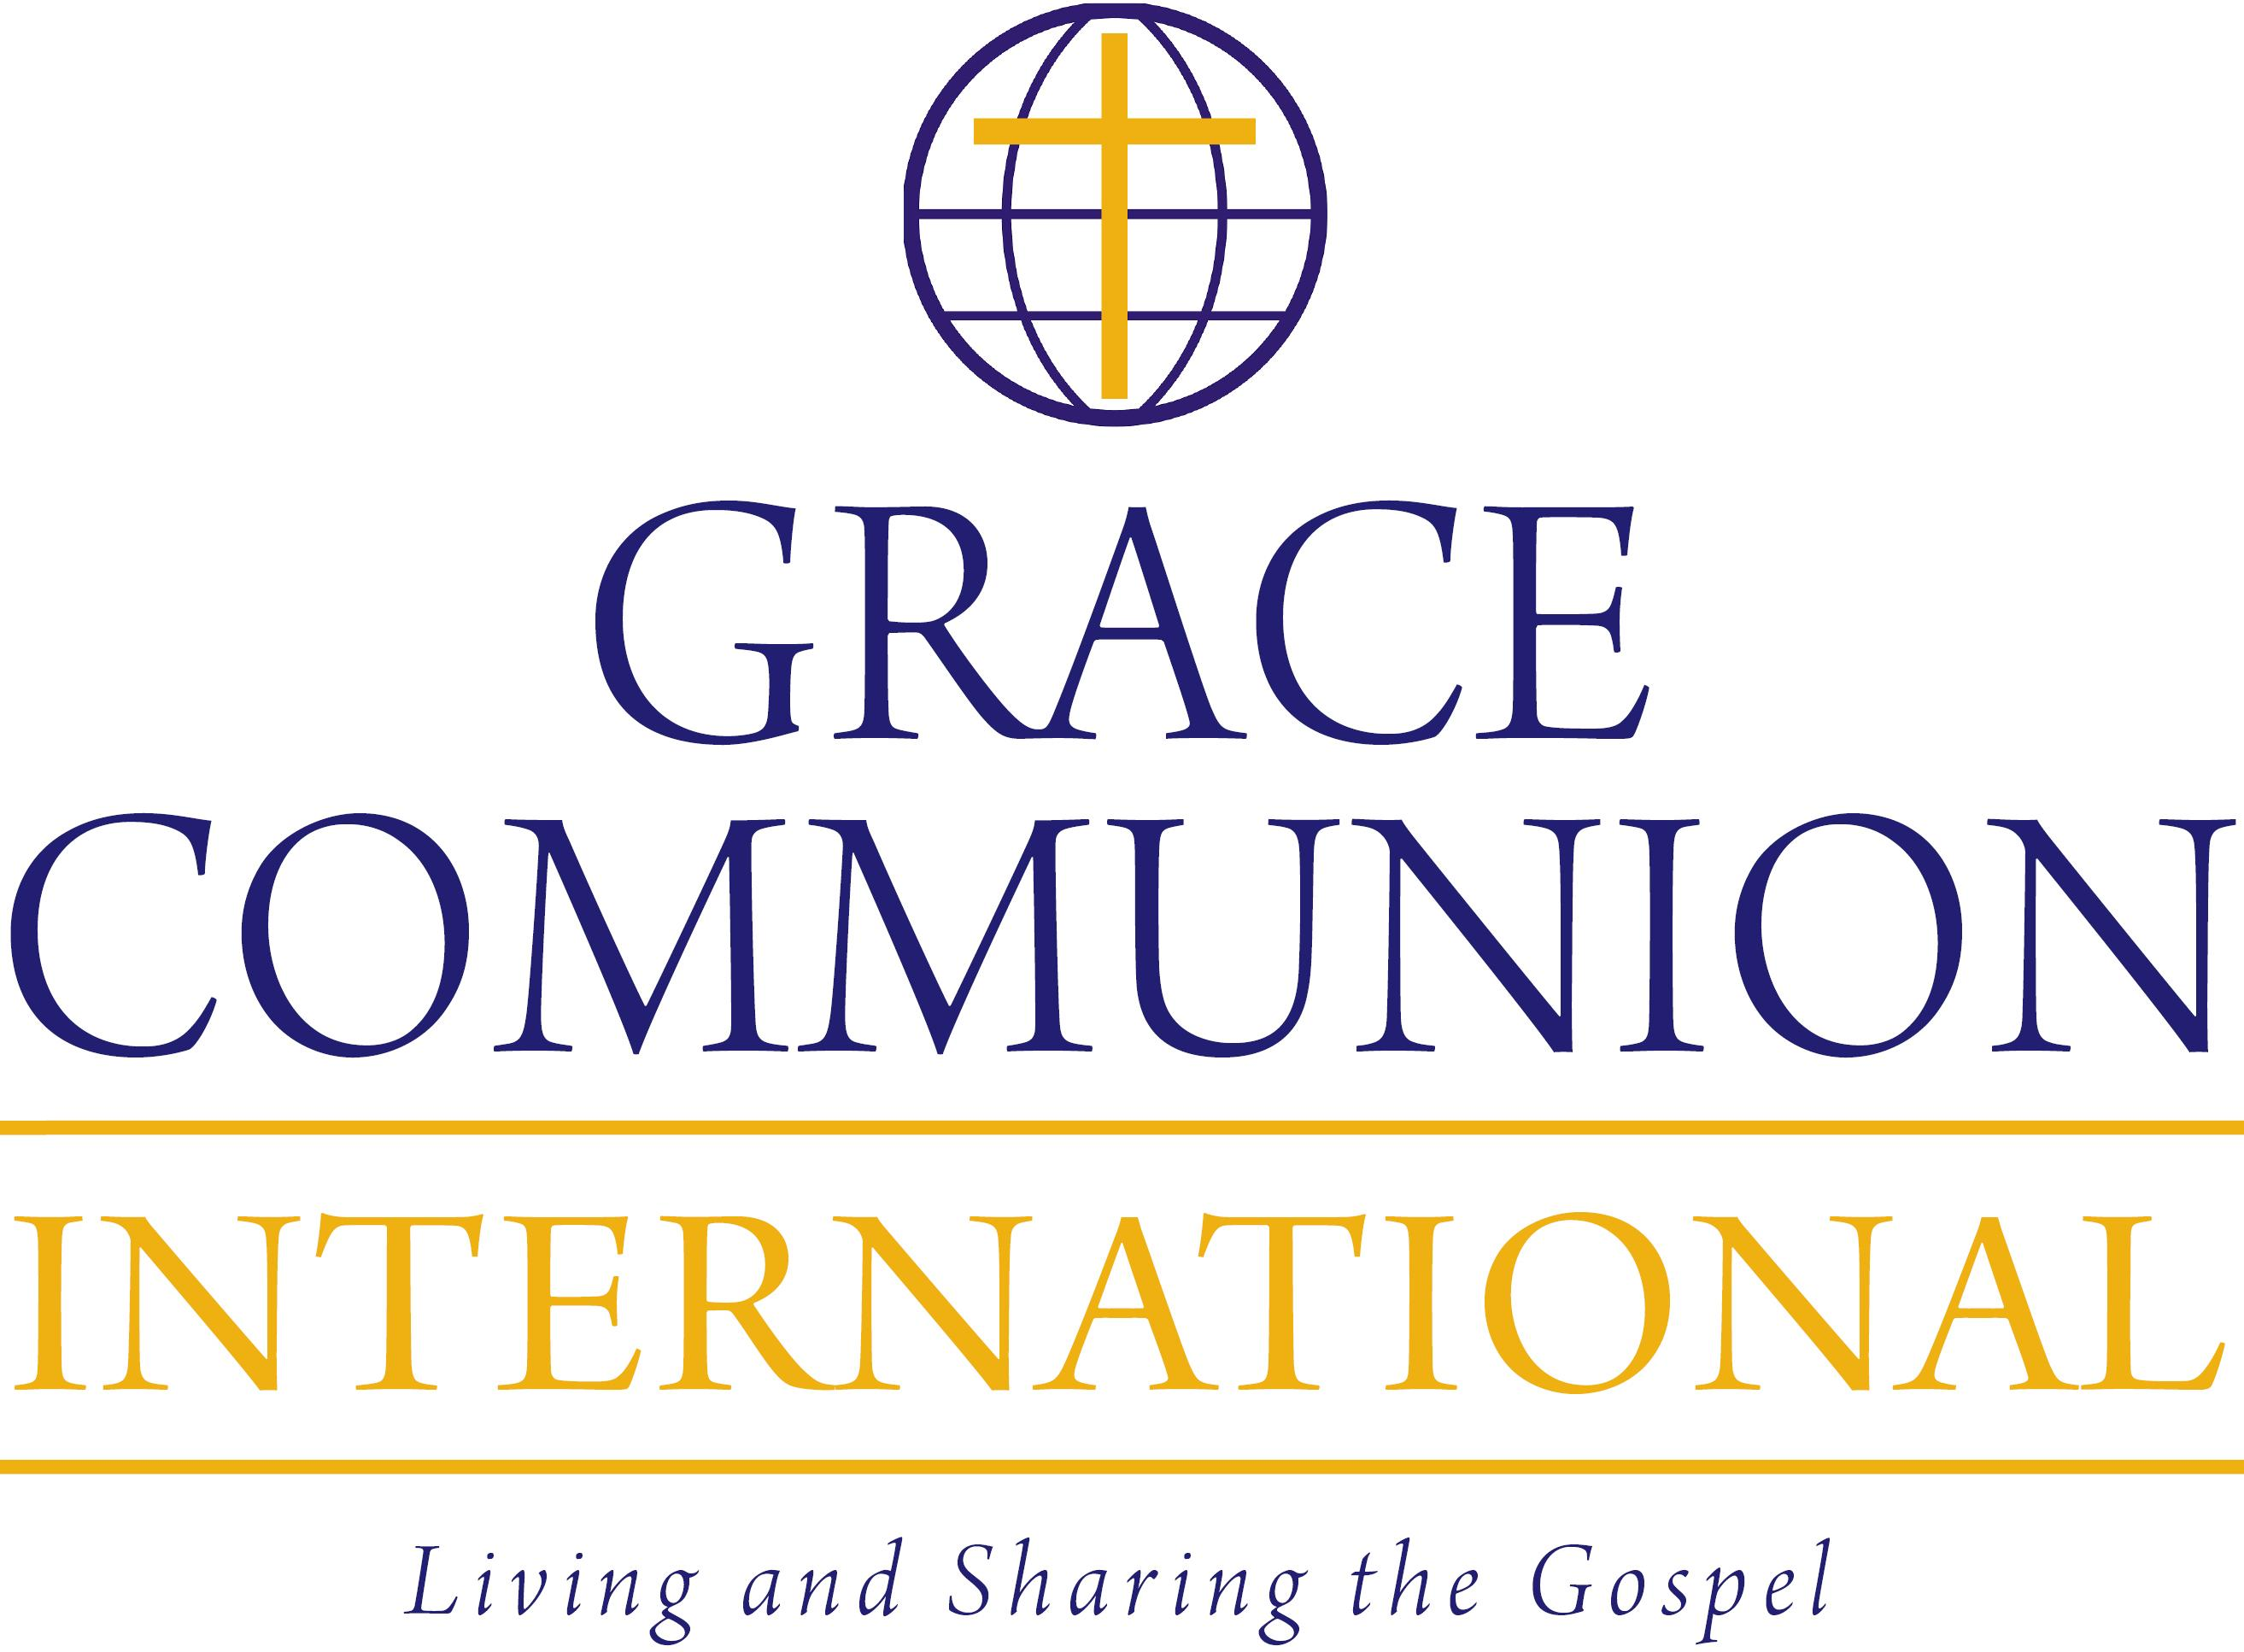 Grace Communion International: Living and Sharing the Gospel